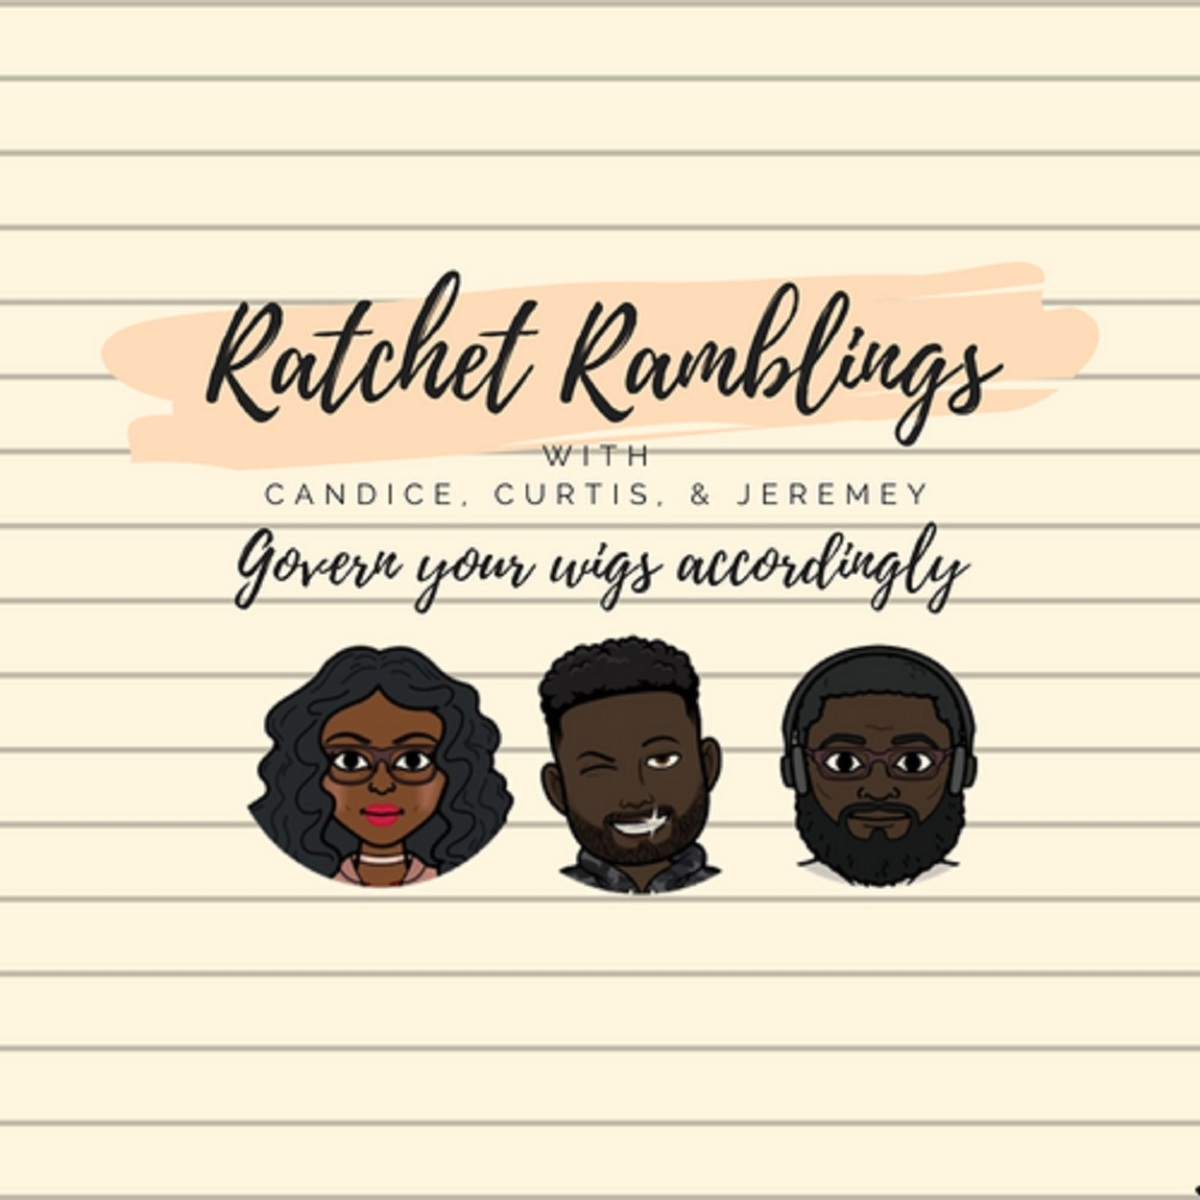 Ratchet Ramblings Episode 67: Bedstuy-Booklyn